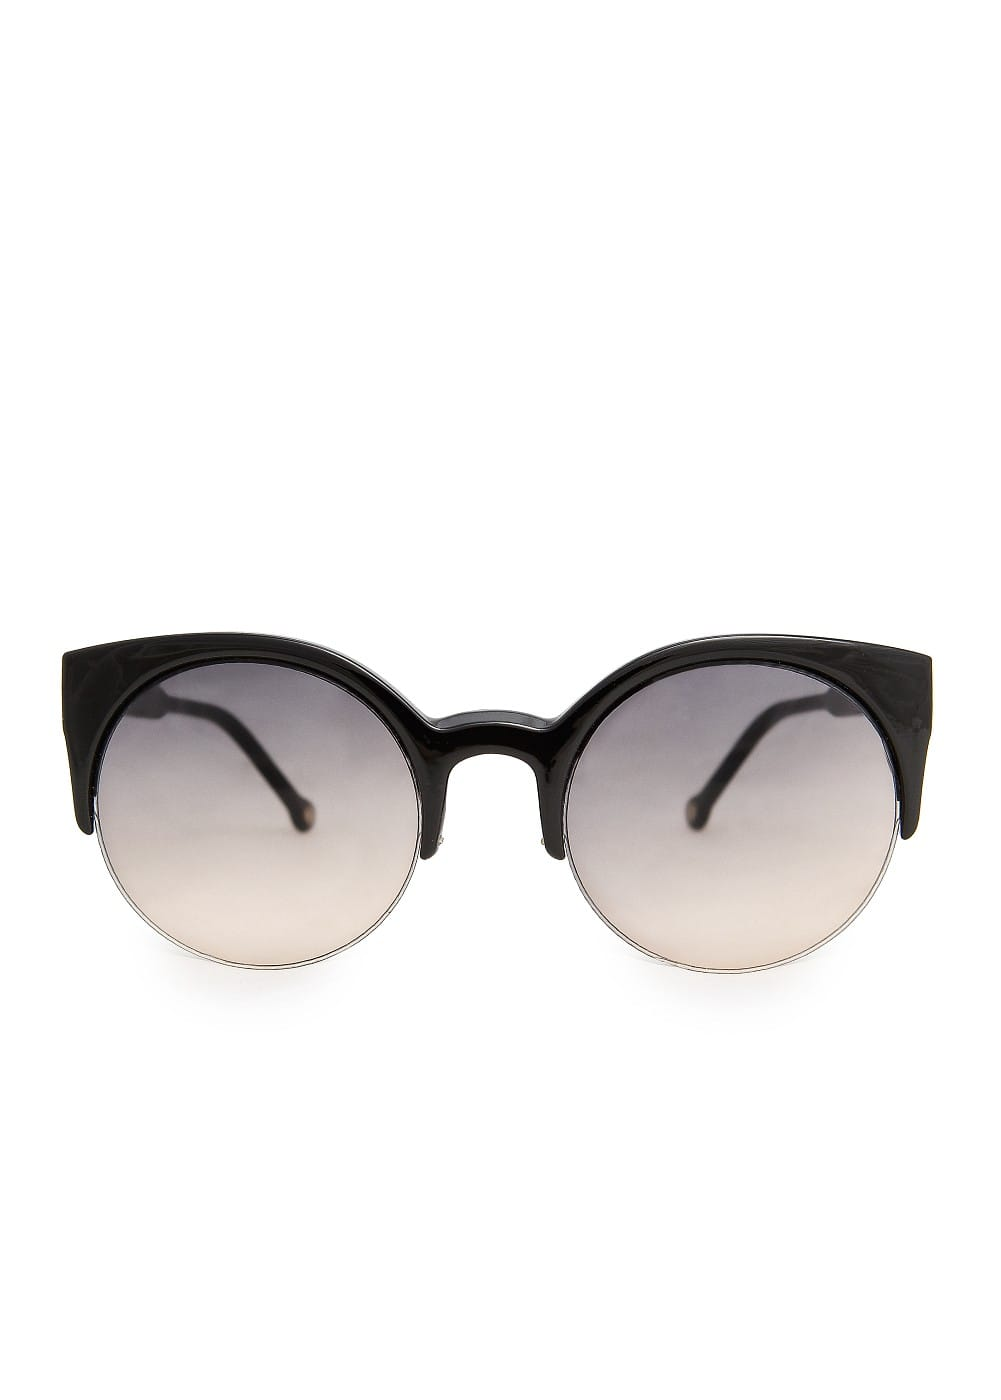 Half frame kitten sunglasses